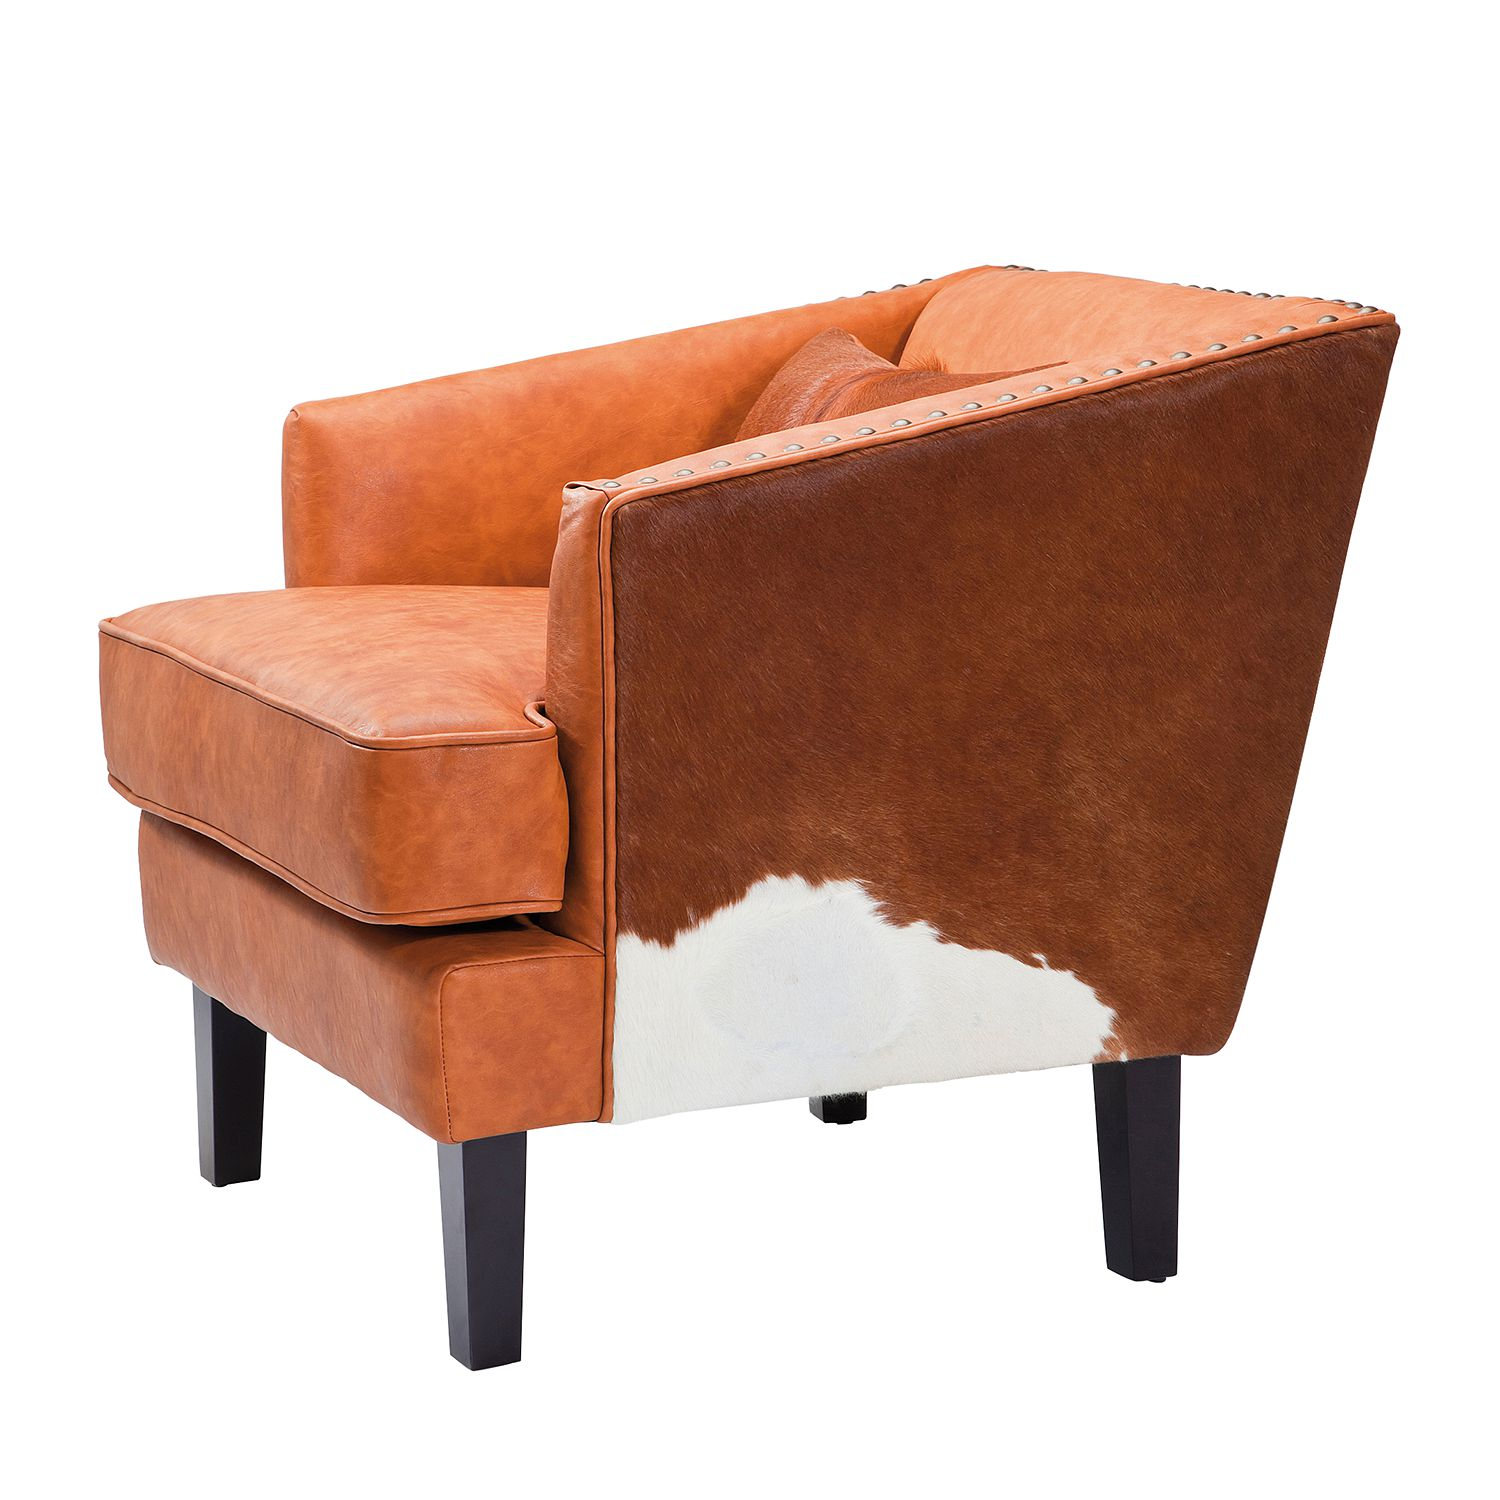 Sessel Texas Brown - Echtleder/Kunstleder - Braun, Kare Design